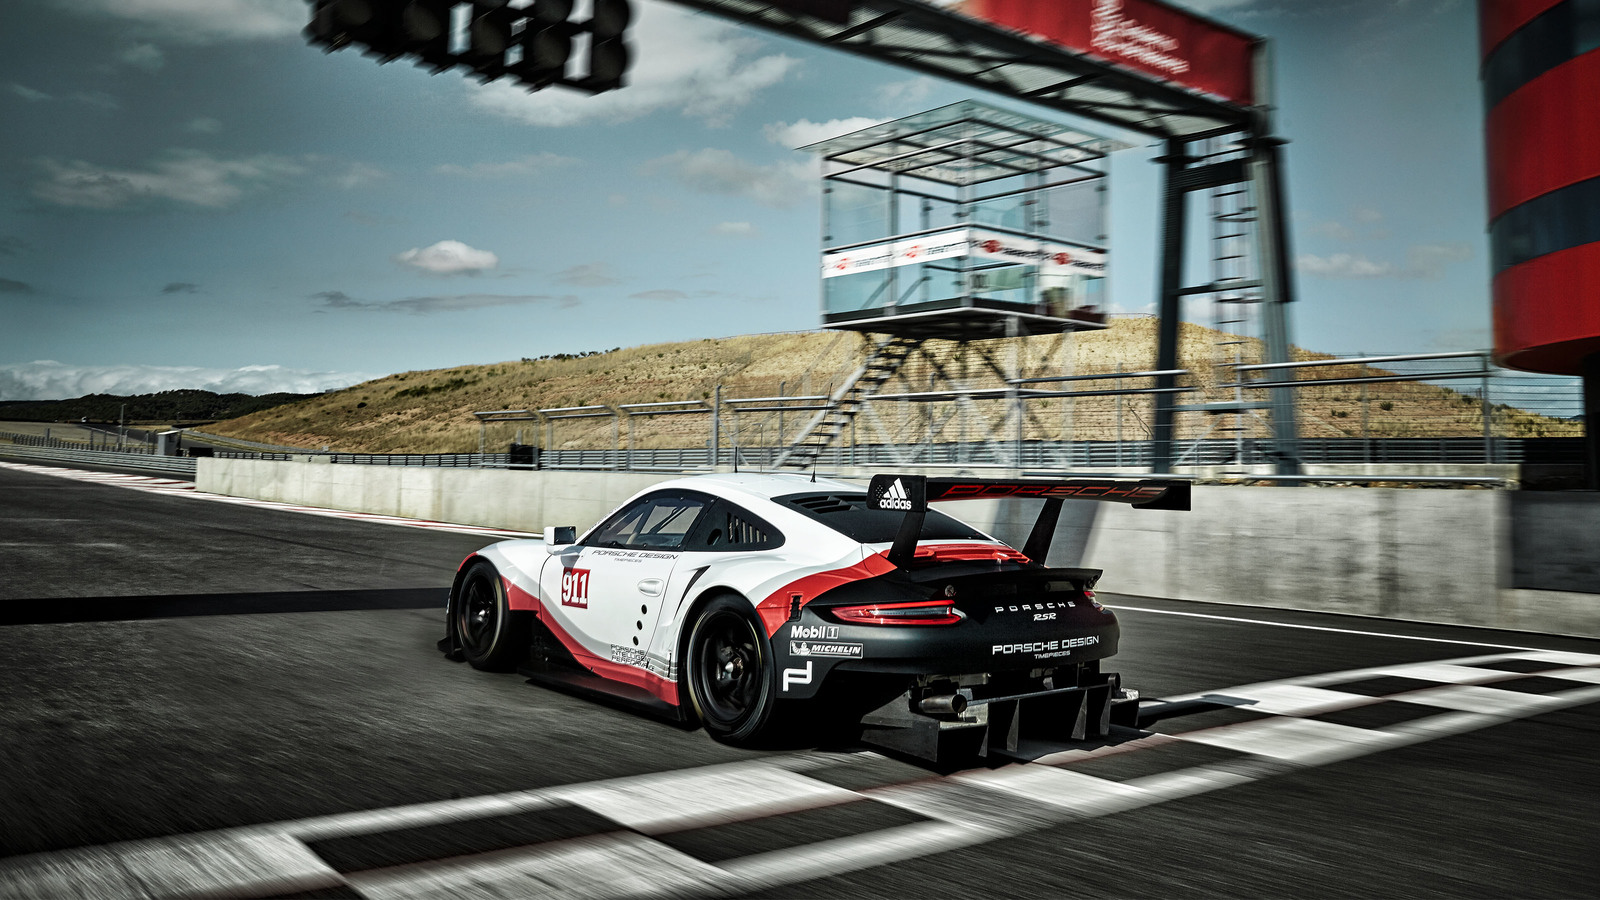 Race Car Driving >> 2018 Porsche 911 RSR - Porsche's Mid-engined 911 Race ...